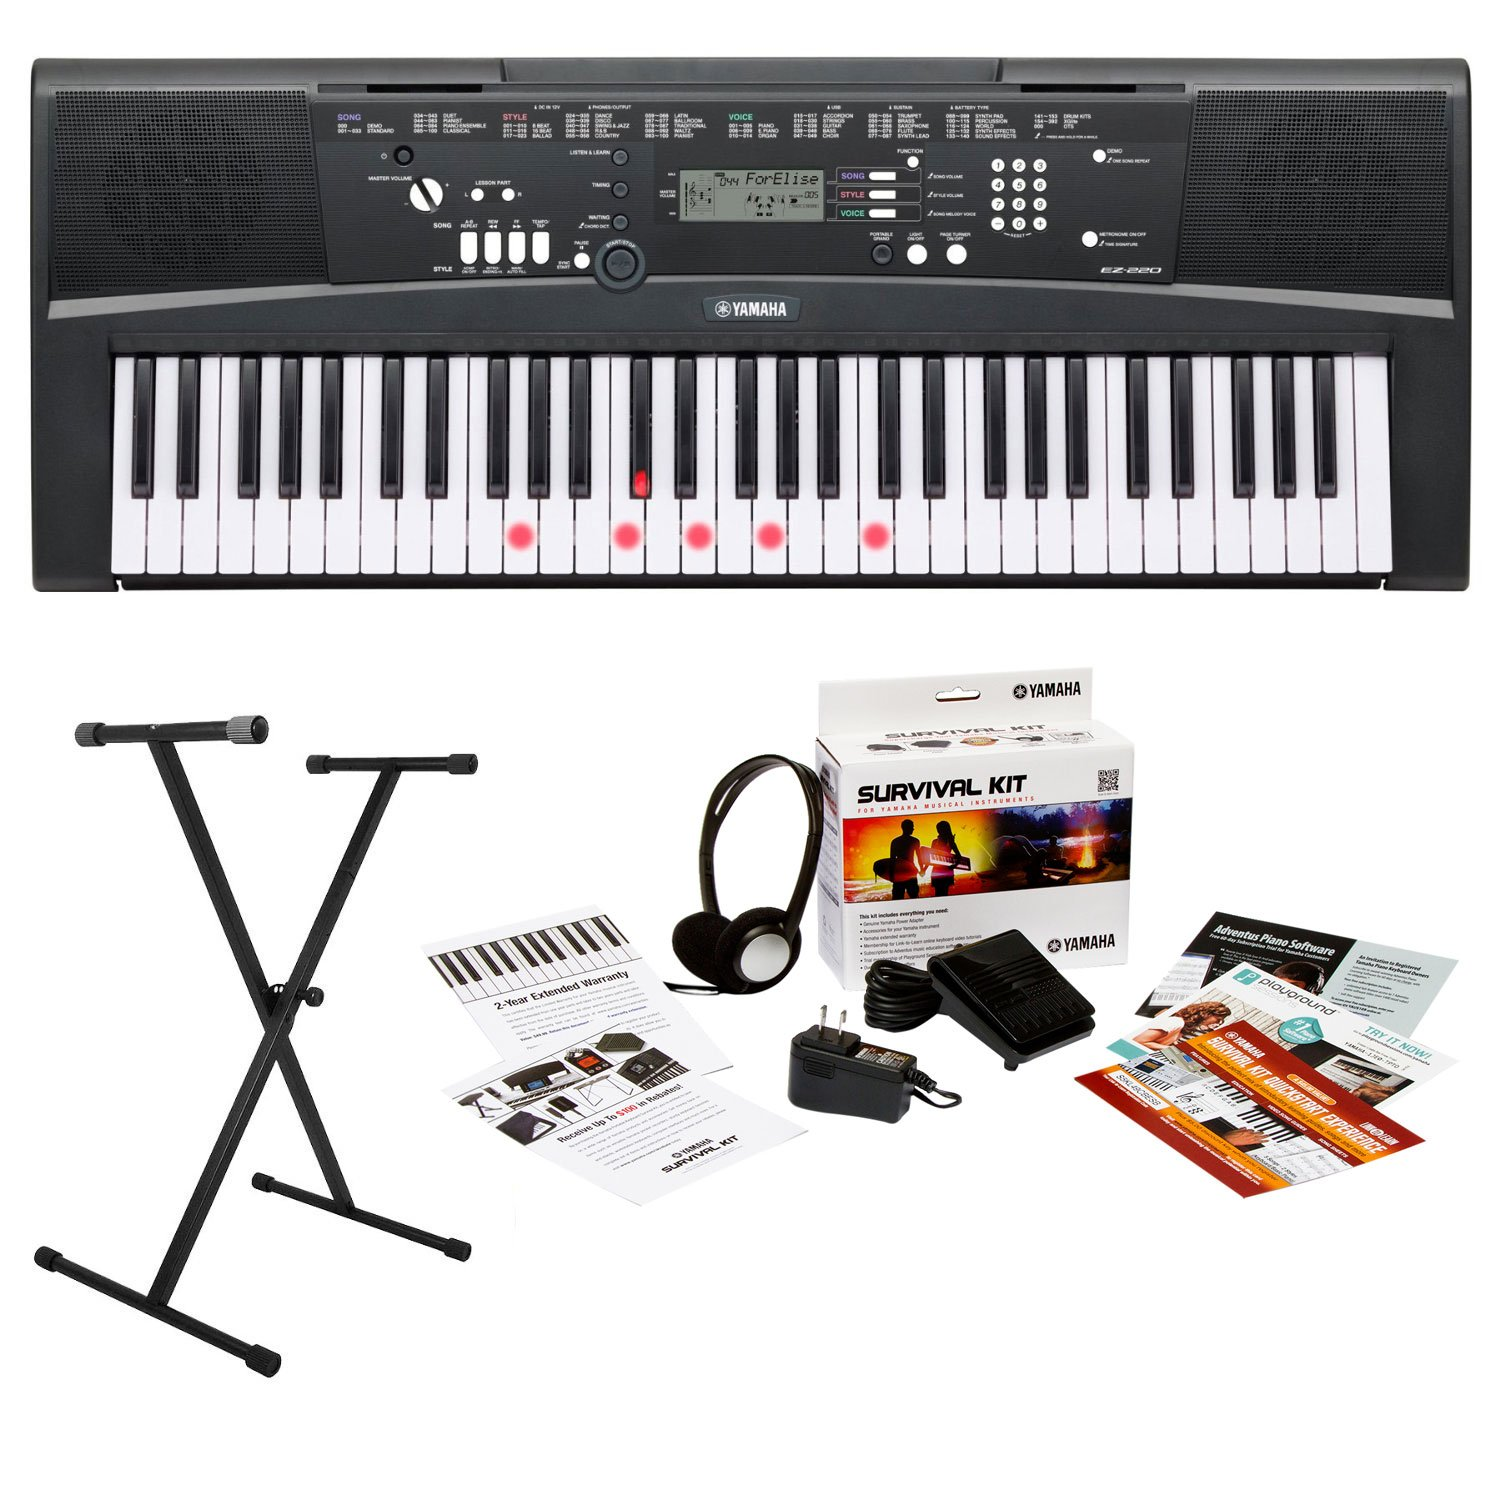 Yamaha EZ220 61-Key Lighted Key Portable Keyboard Bundle with X-Style Keyboard Stand and Survival Kit (Includes Power Supply and Headphones and 2 Year Warranty)